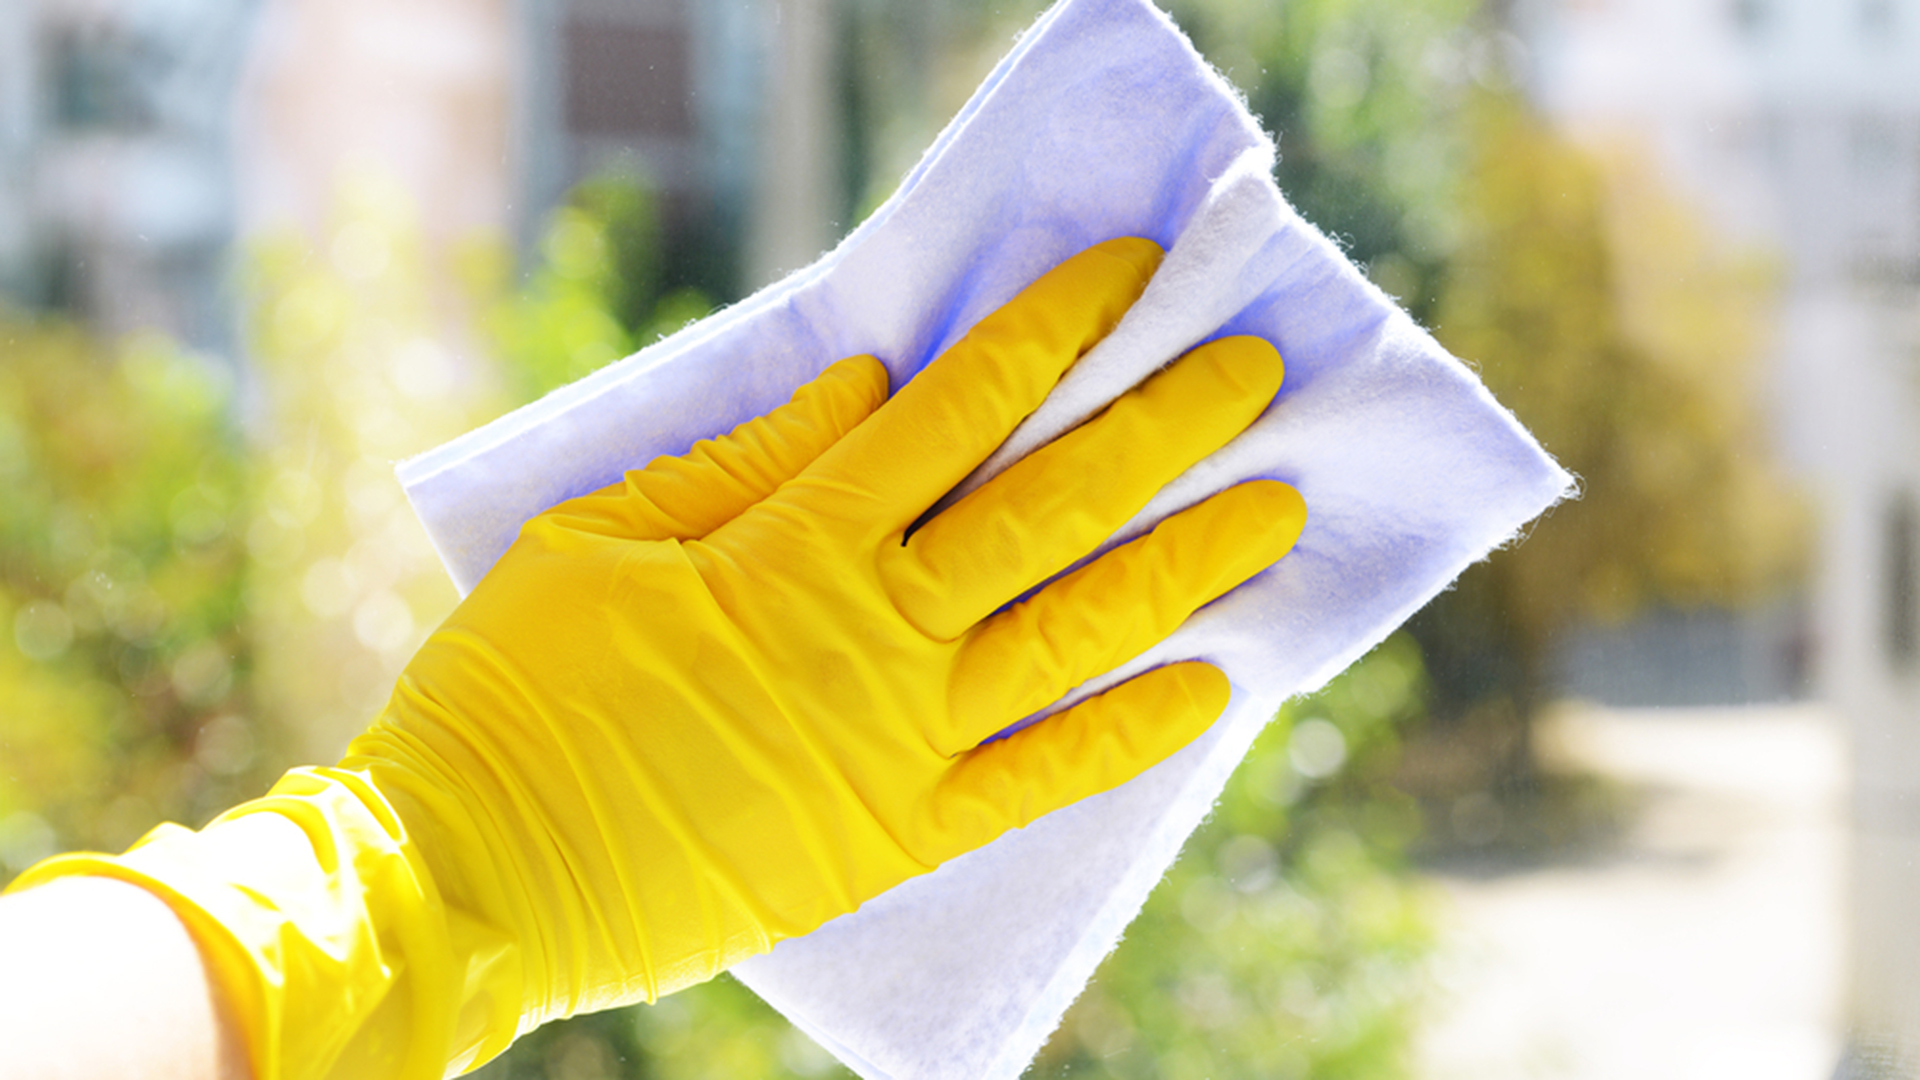 How to clean house windows - How To Clean House Windows 32